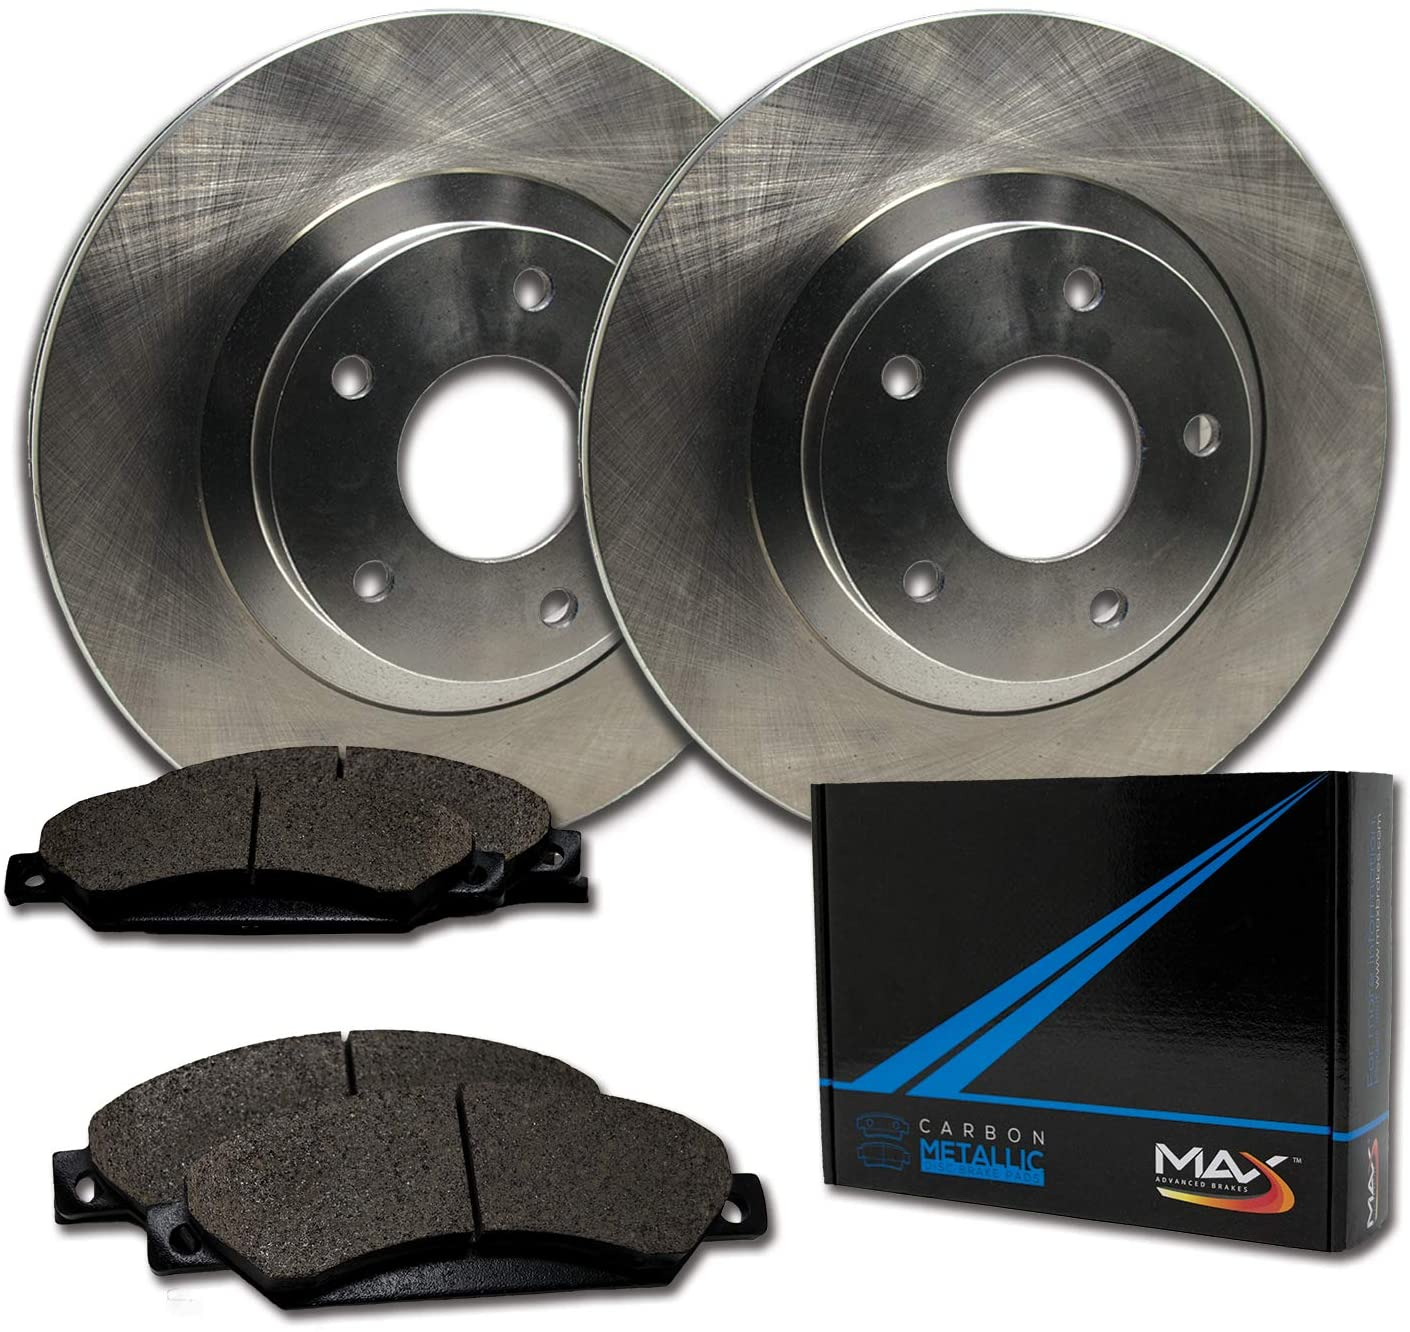 Front Max Brakes Cheap SALE Start Premium OE Rotors Metallic Carbon T with El Paso Mall Pads